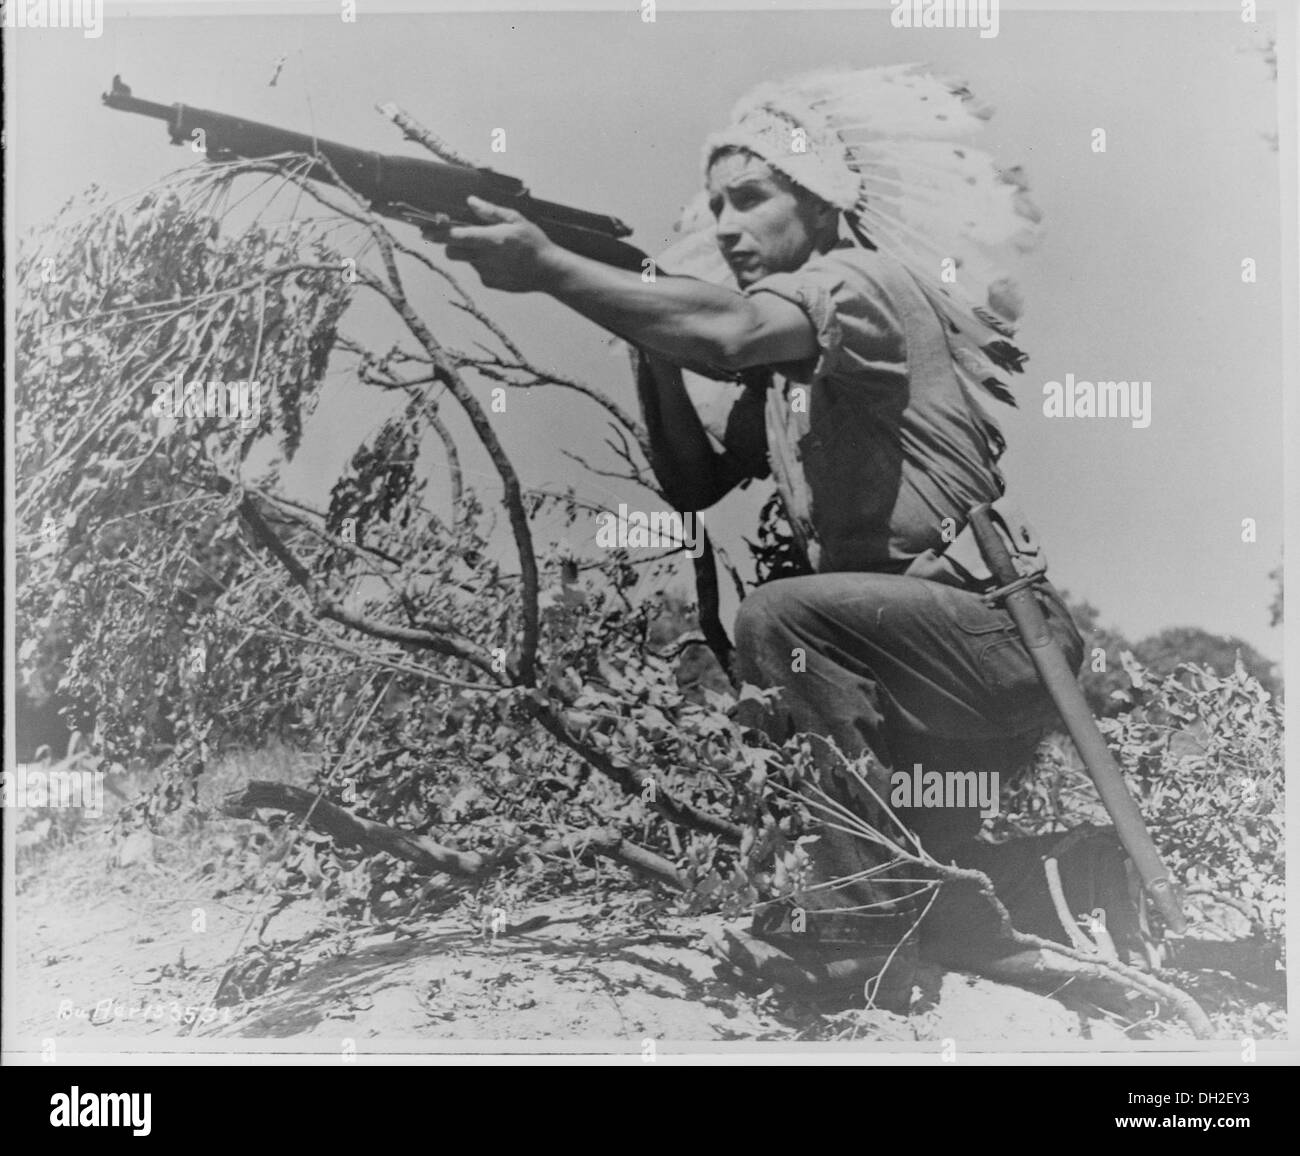 Dan Waupoose, a Menomini chief, full-length, kneeling with a rifle and wearing a feathered headdress, Algiers, Lousiana, 520636 - Stock Image